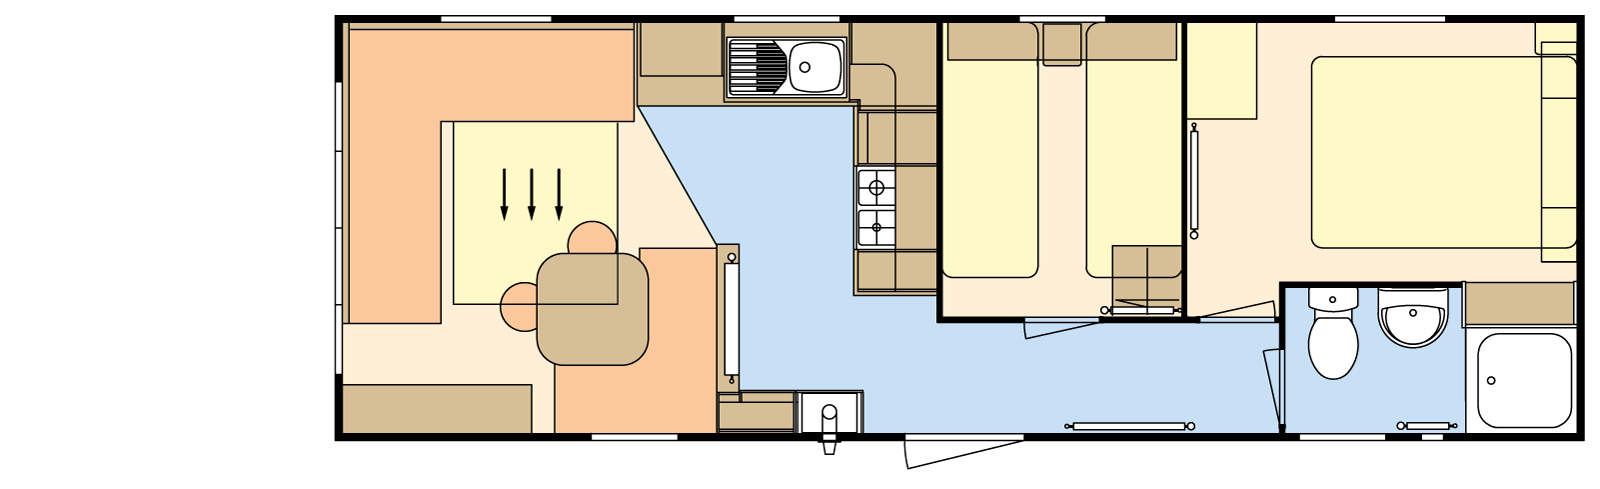 28 × 10 – 2 bedroom/6 berth